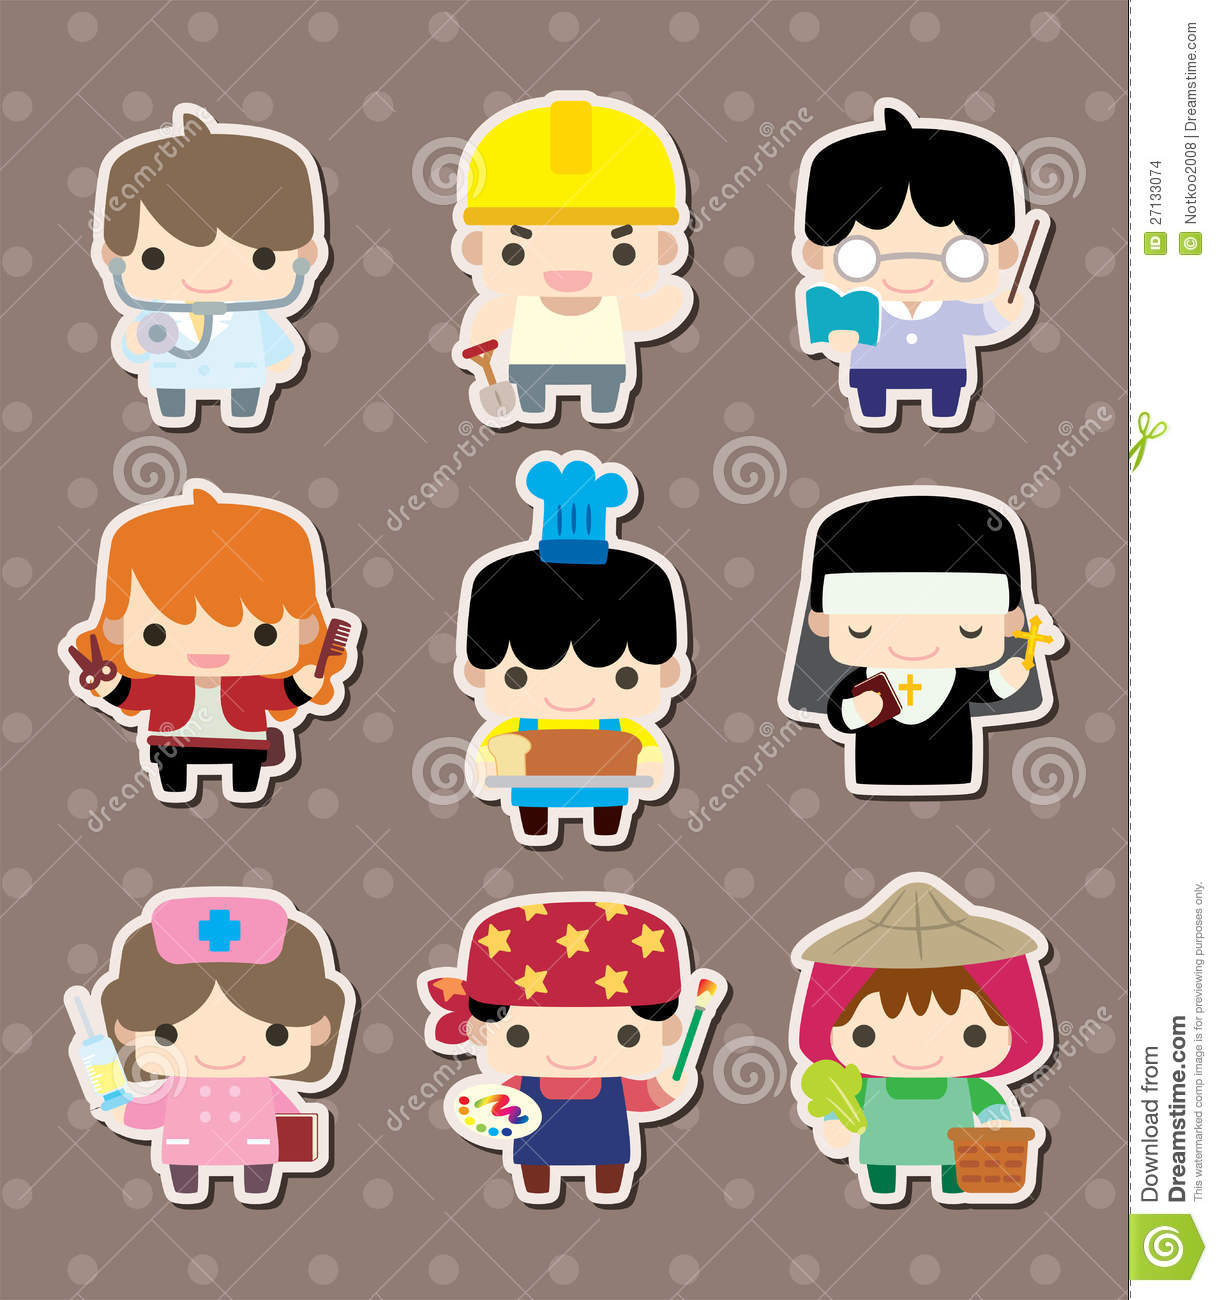 Cute Cartoon Pictures Of People Job Stickers Stock